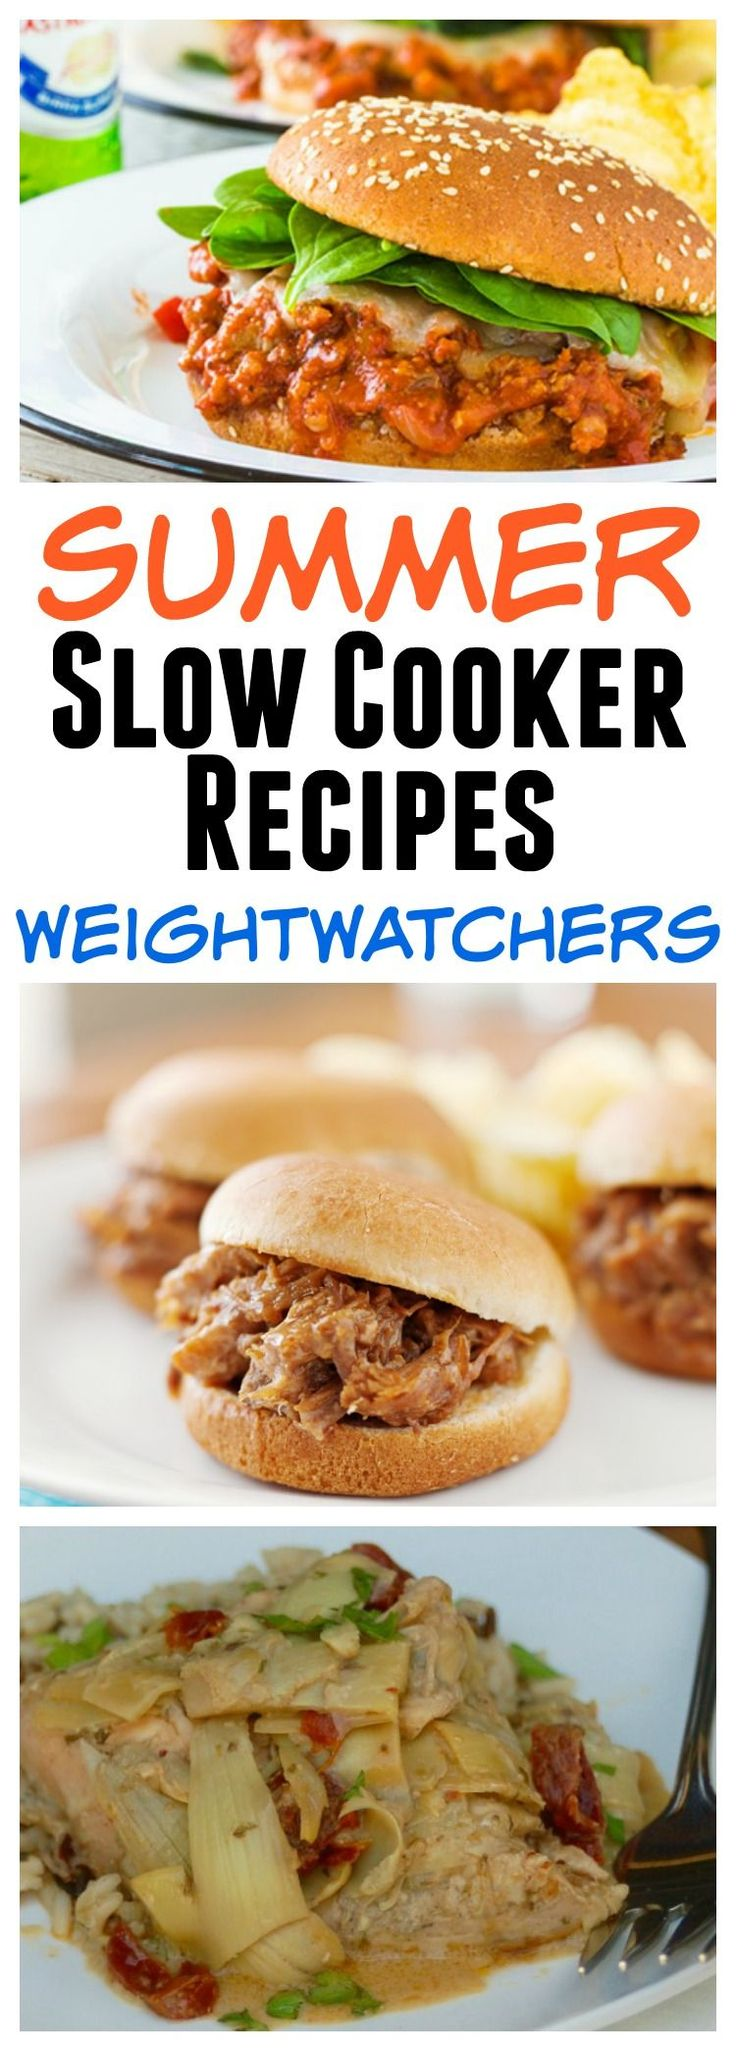 43+ Summer Slow Cooker Recipes with SmartPoints & Points Plus for Weight Watchers